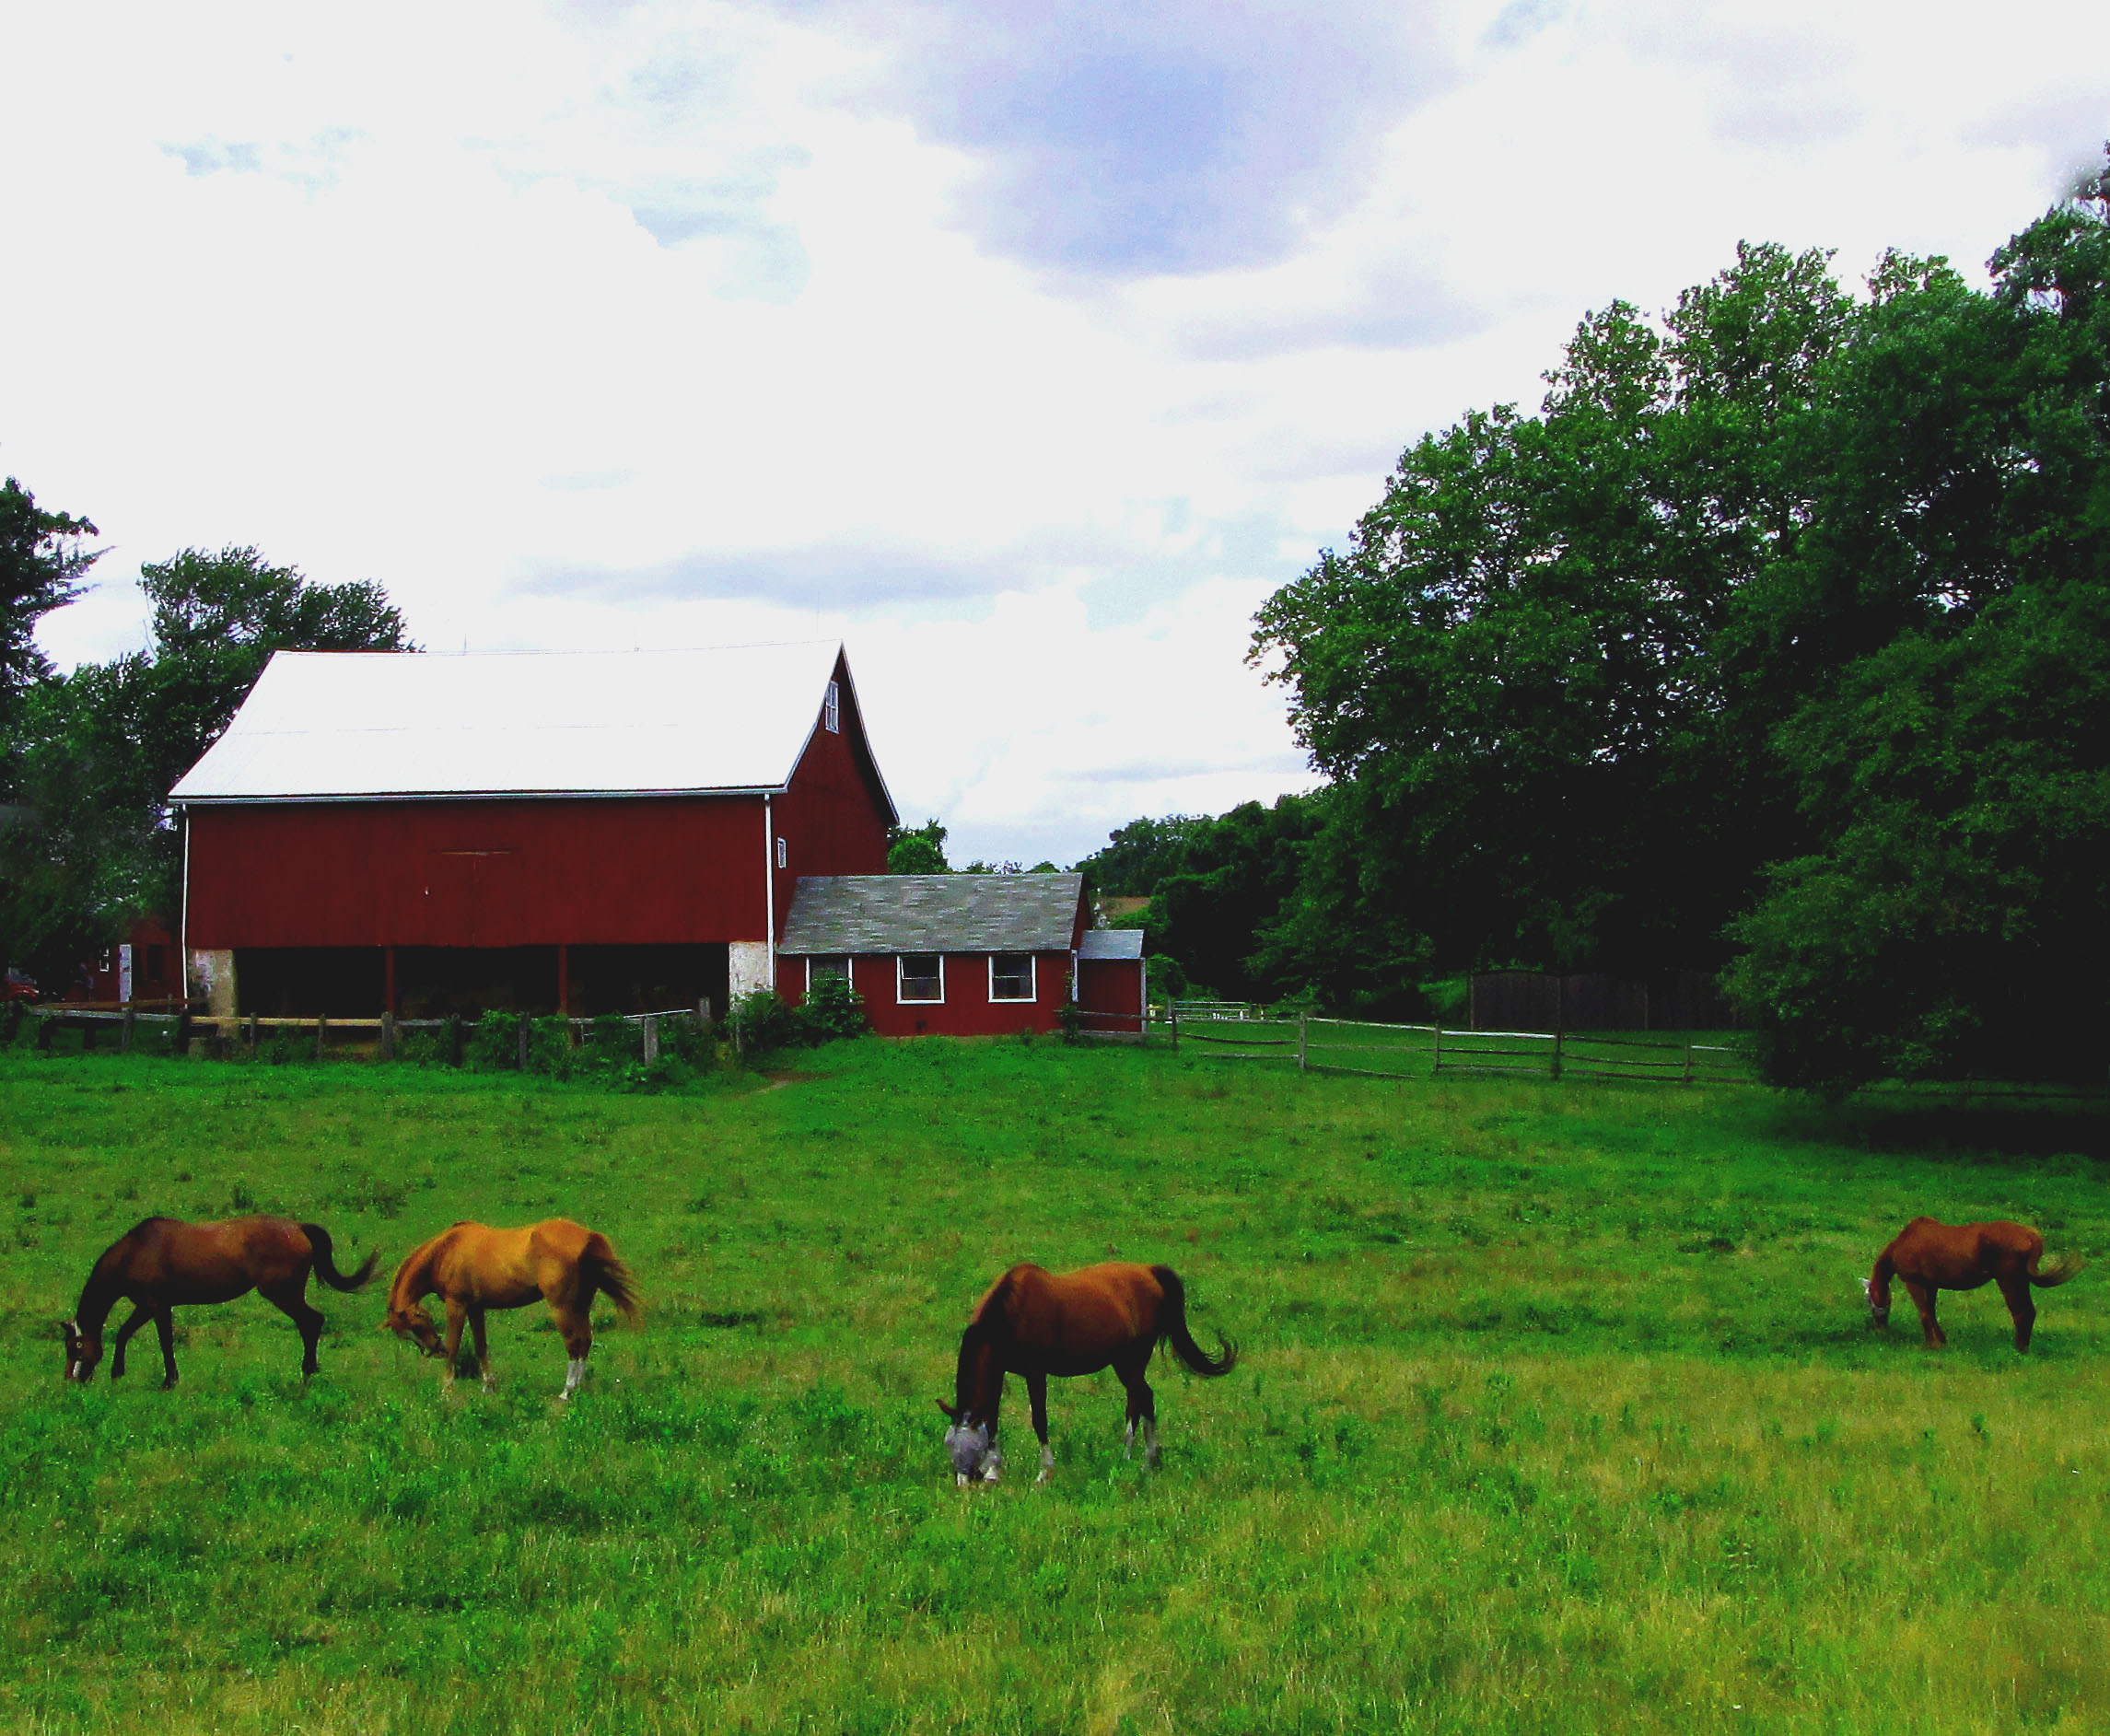 Horse Farm In Upper Southampton Bucks County